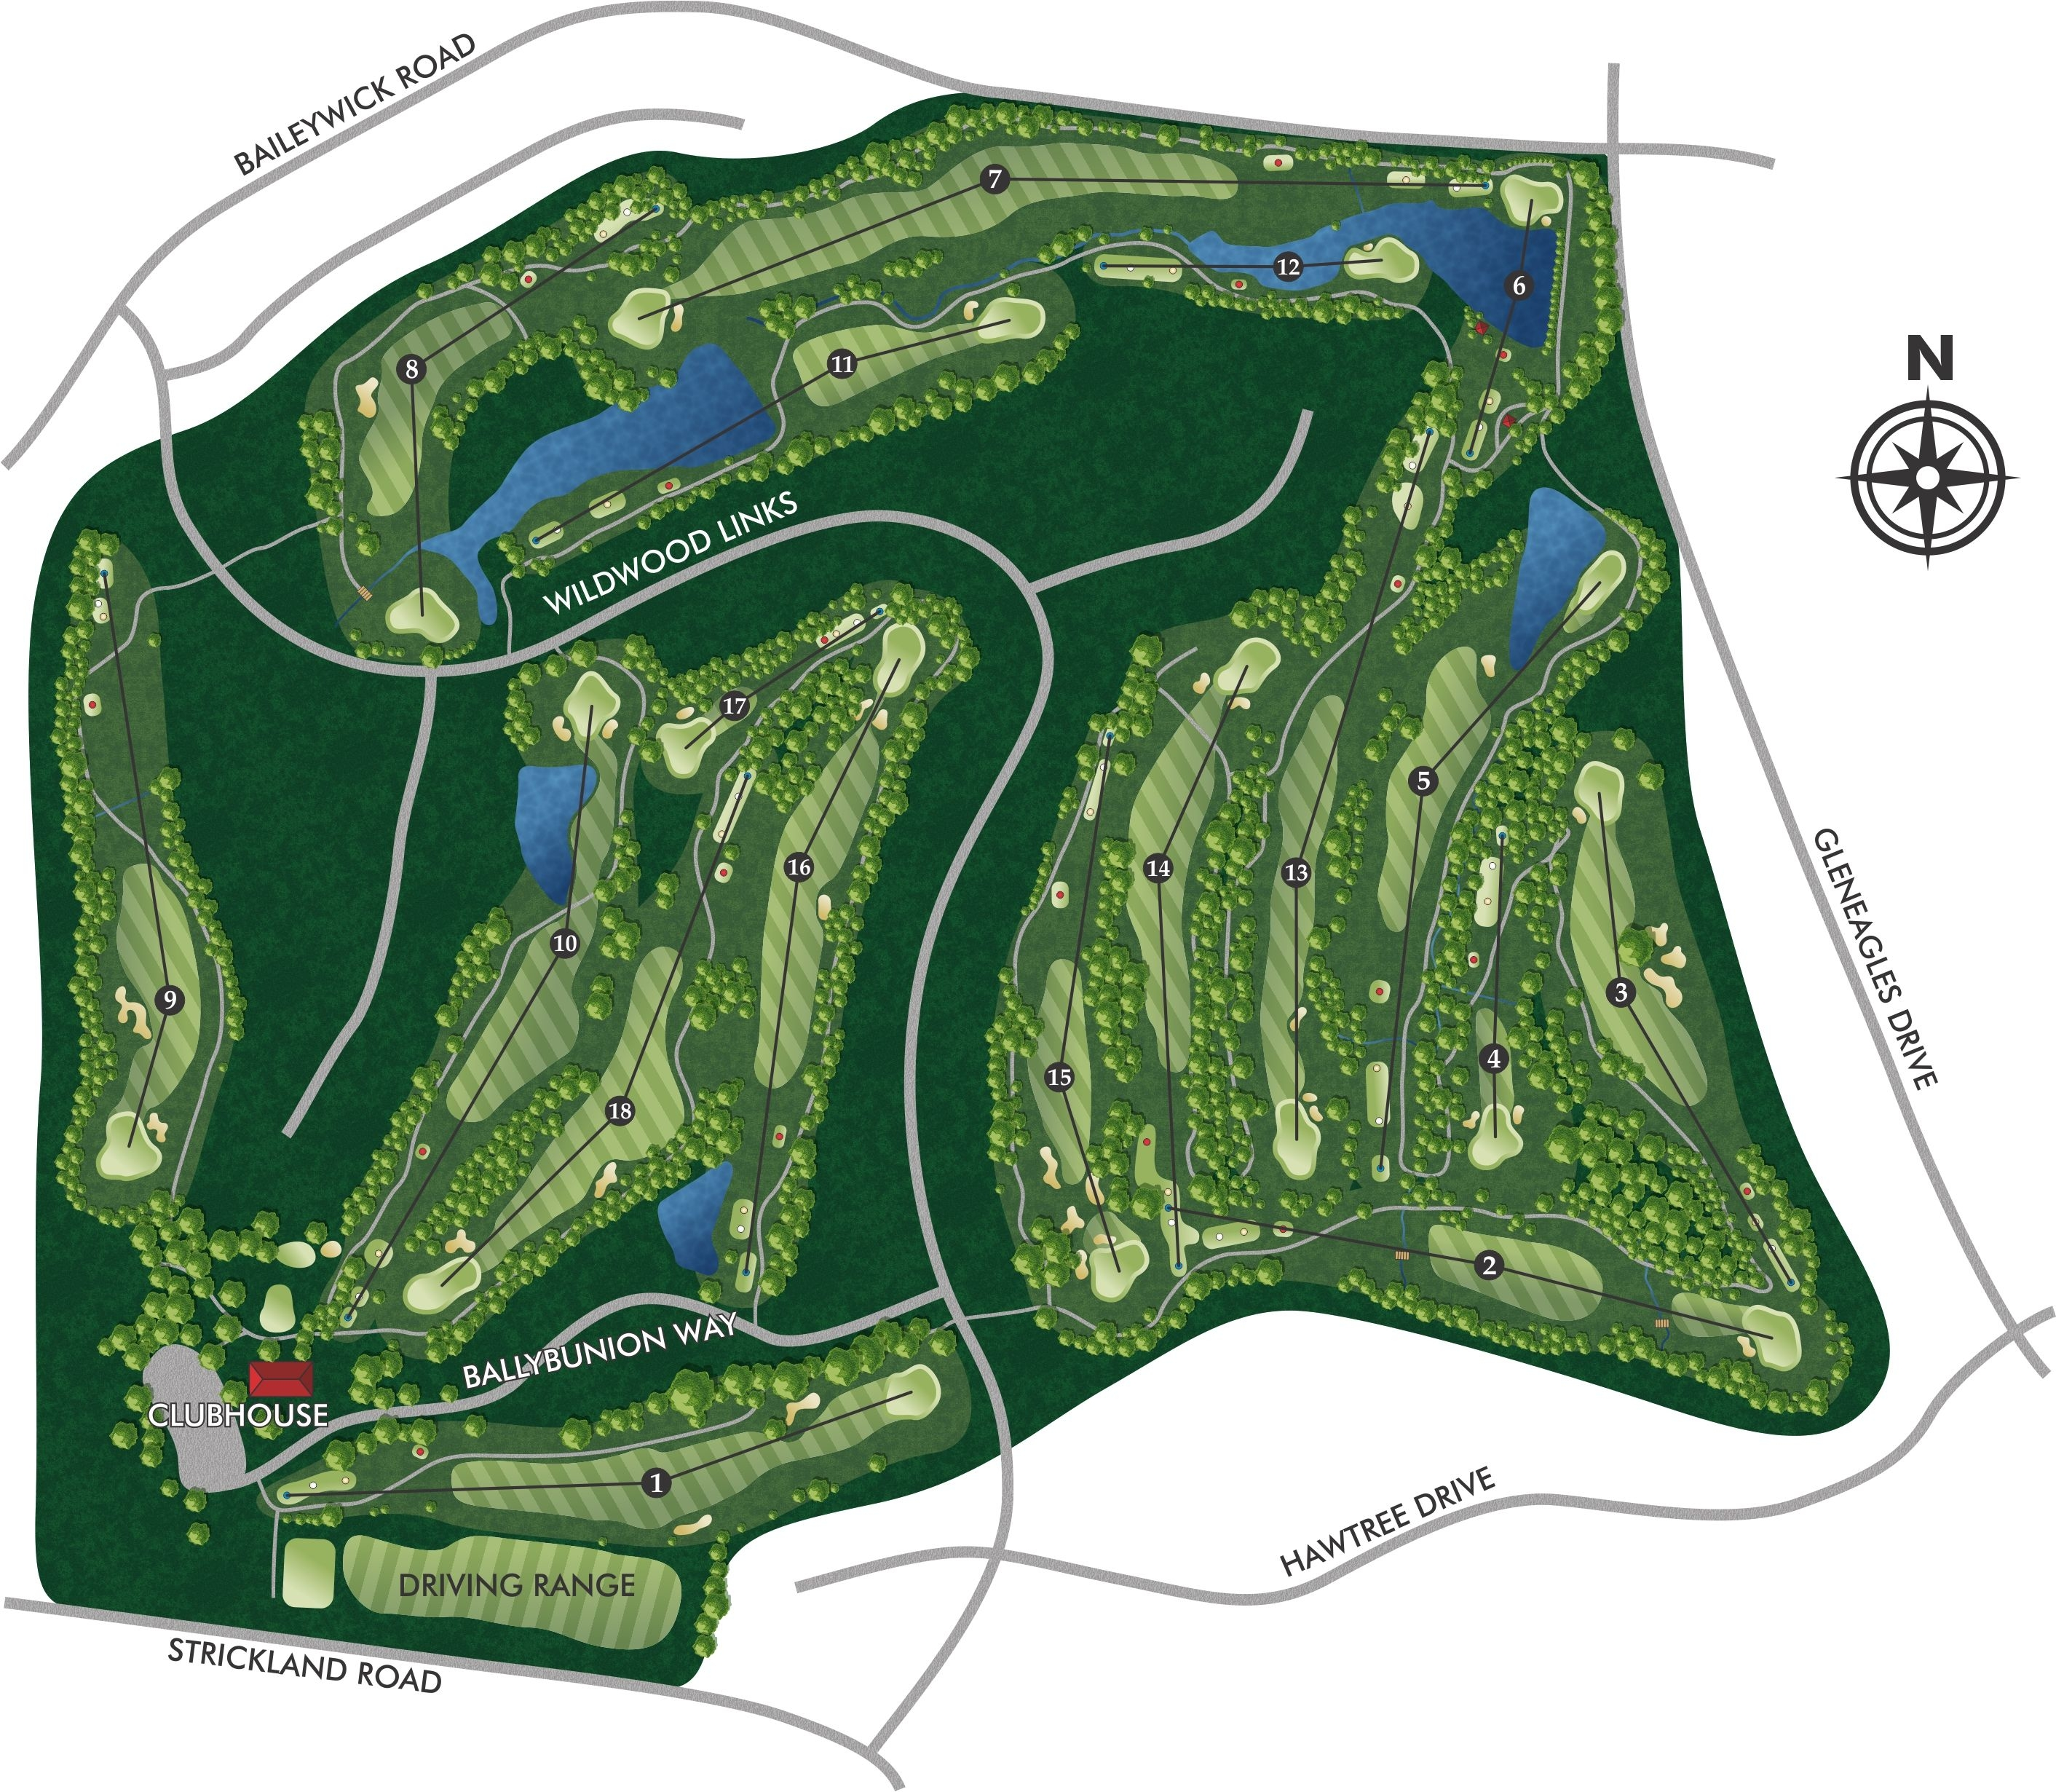 Wildwood-Green-Course-Map-and-Overview-of-Layout